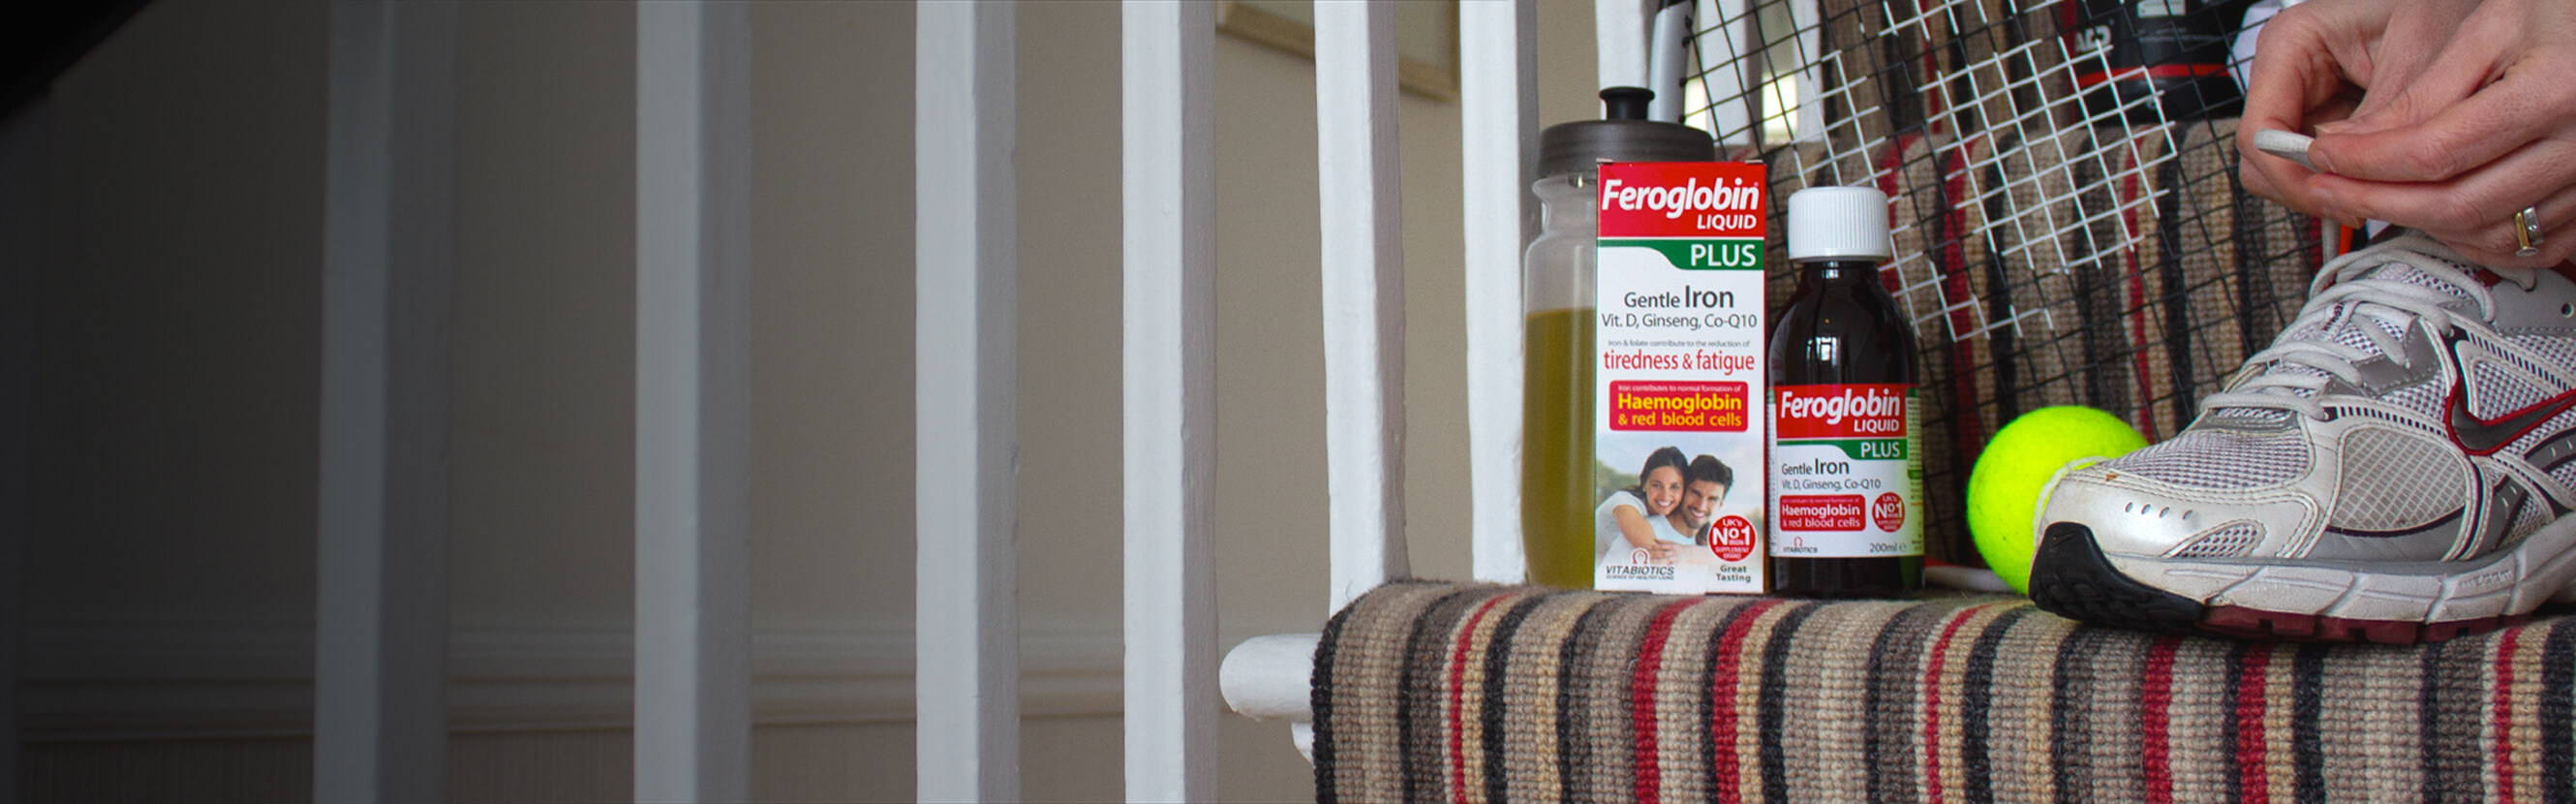 Feroglobin Liquid Plus gives you all the benefits of our original gentle liquid Iron with added nutrients like Vitamin D, Siberian Ginseng, Co-Q10 and more. It's a source of wide-ranging support in one delicious honey and orange blend.